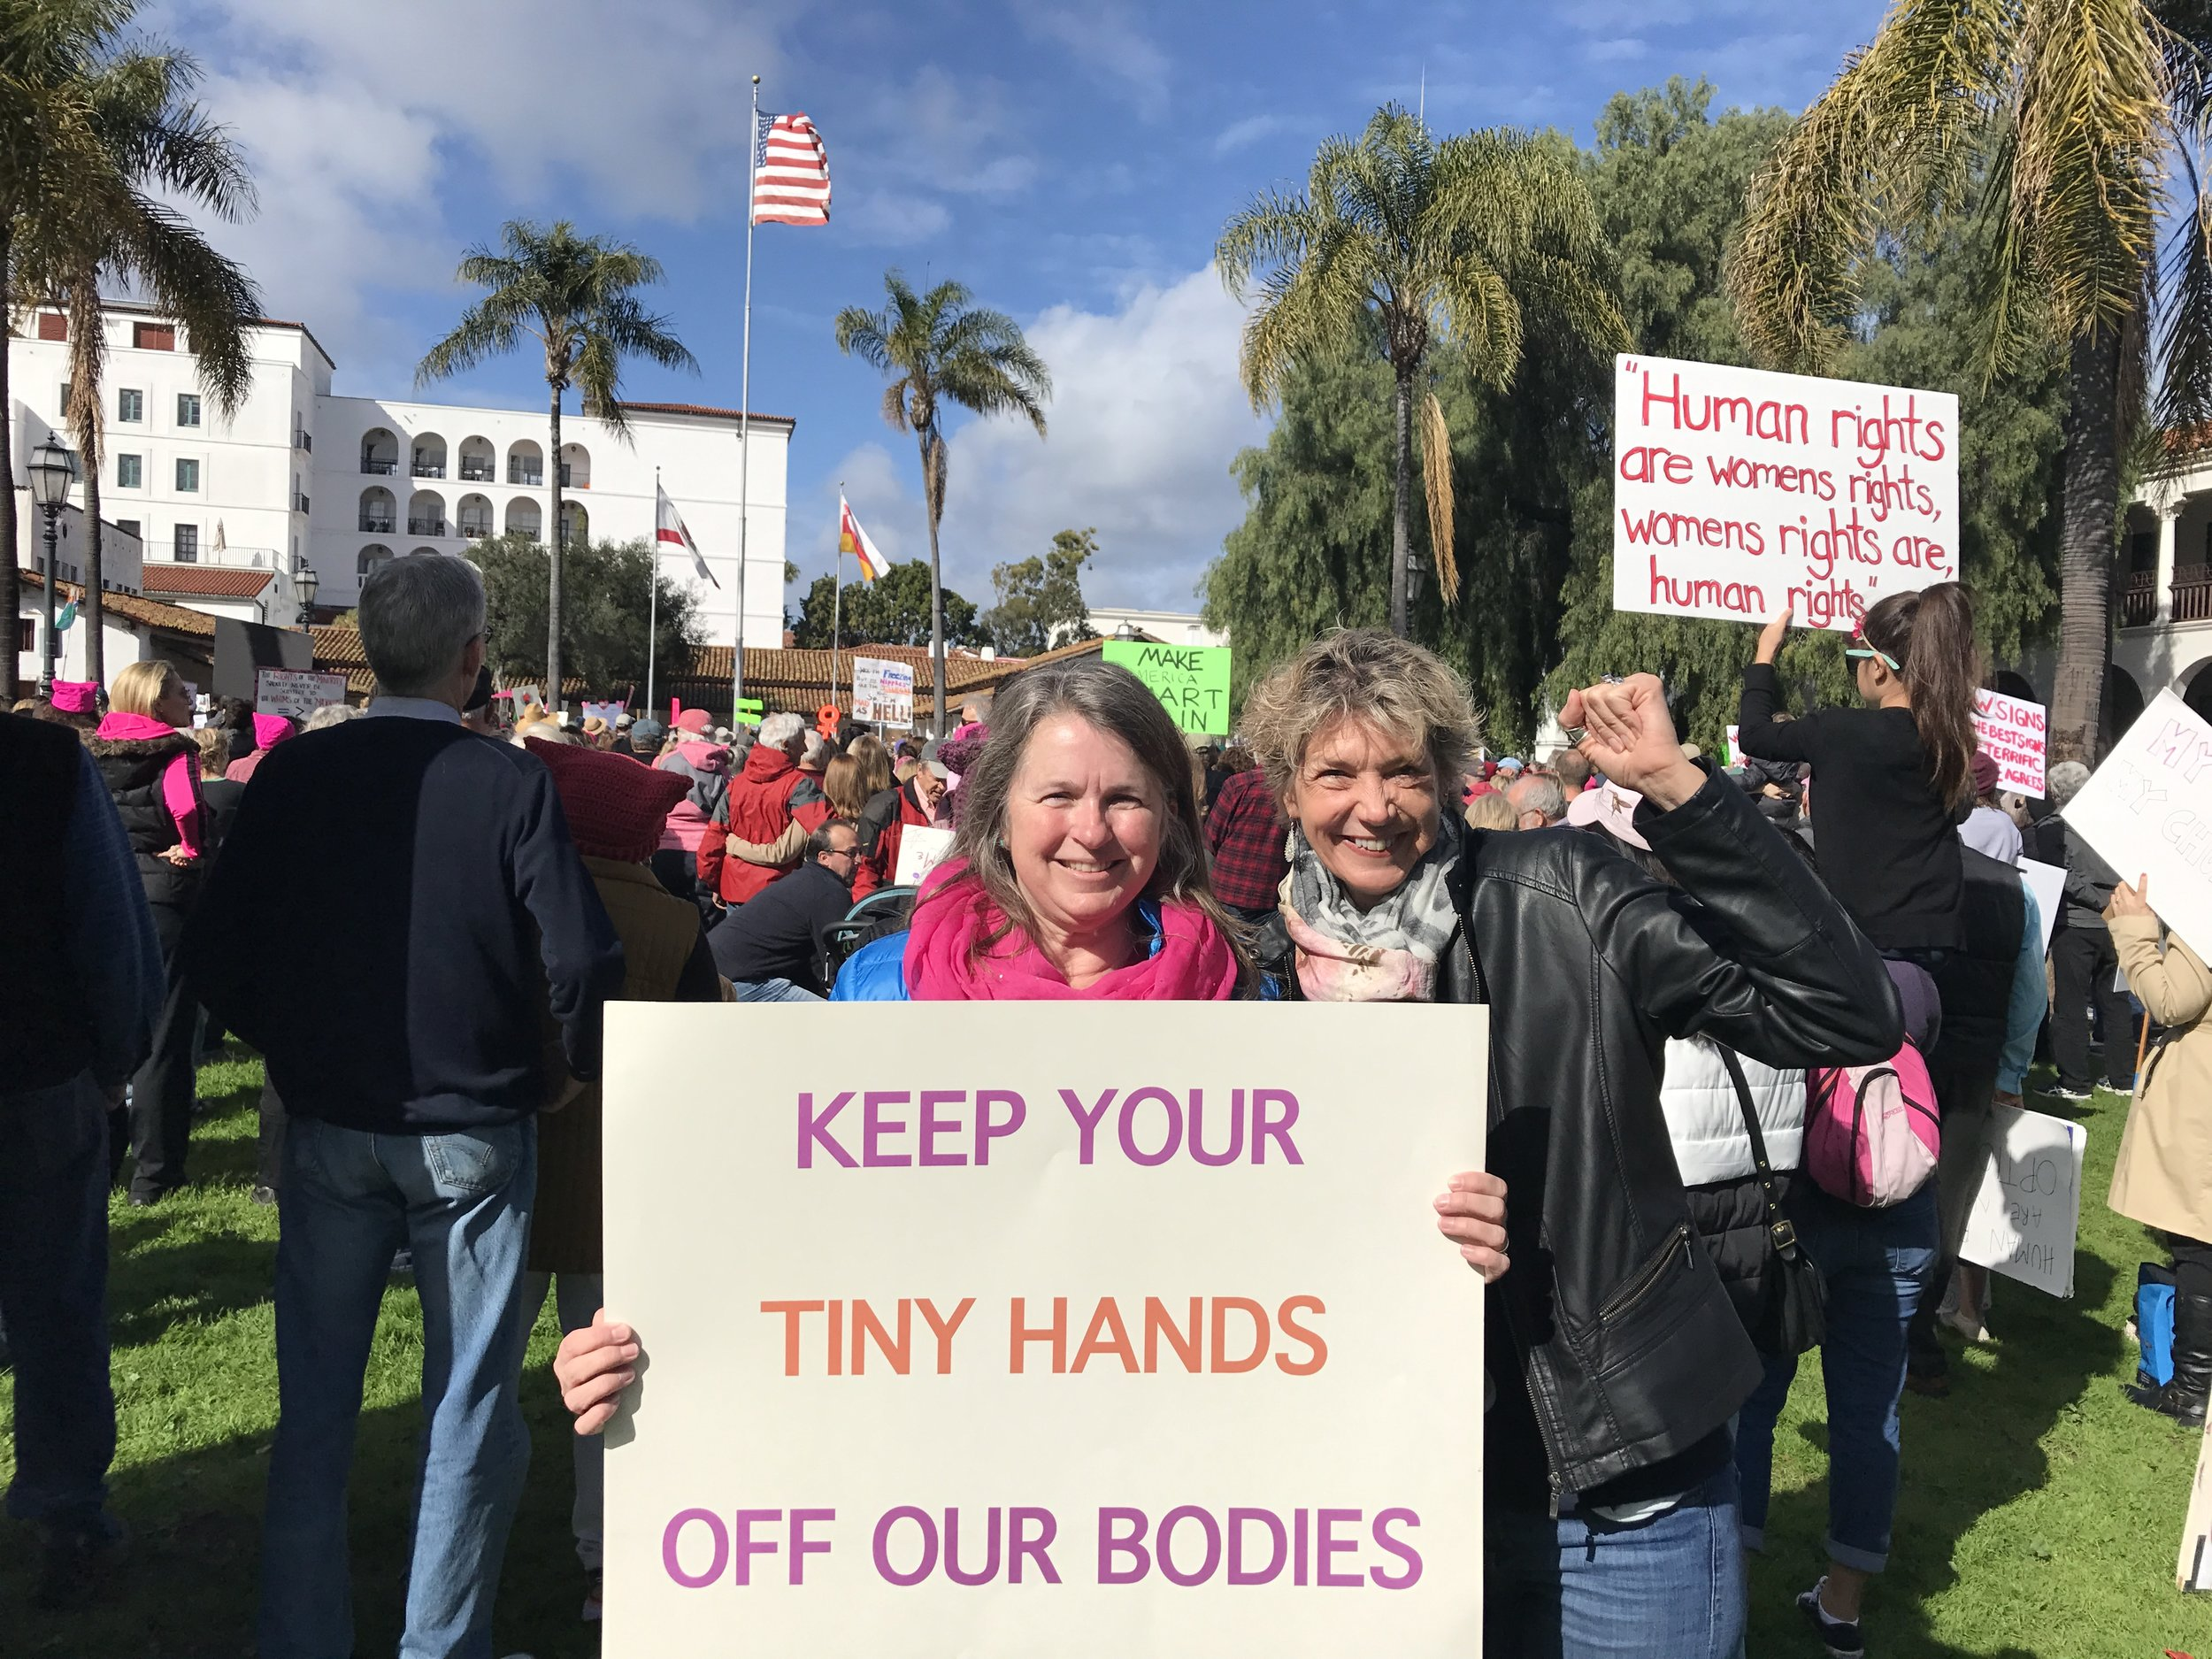 With Joan Bolton at Santa Barbara's Women's March in January. Don't you love her sign?